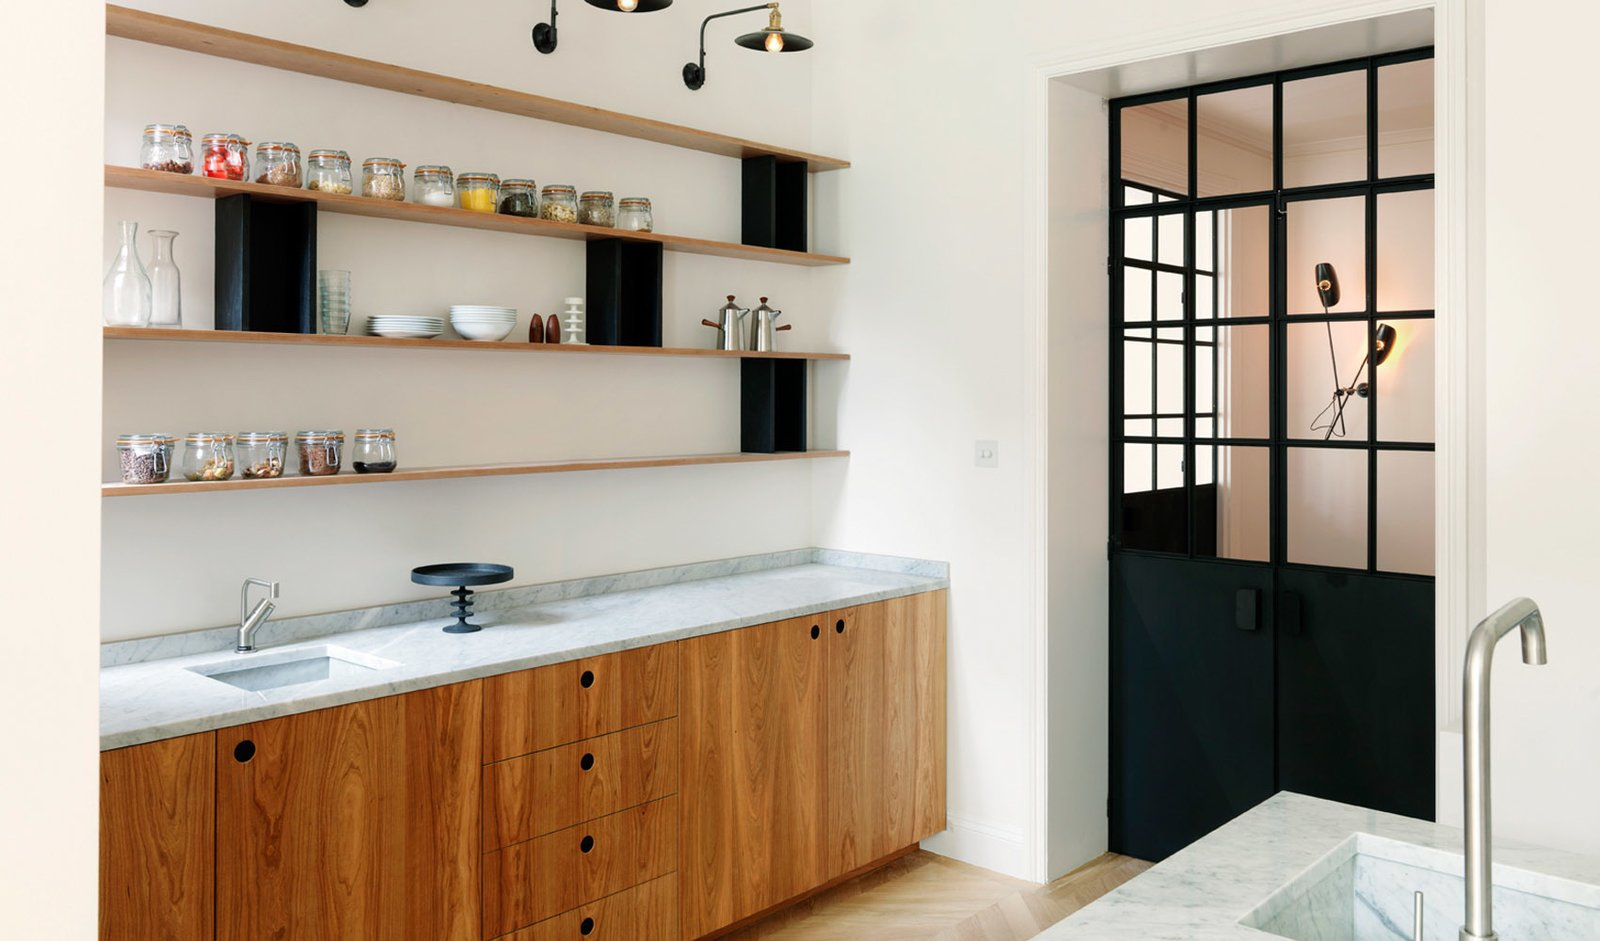 Photo 3 of 6 in West London House by Studio Maclean